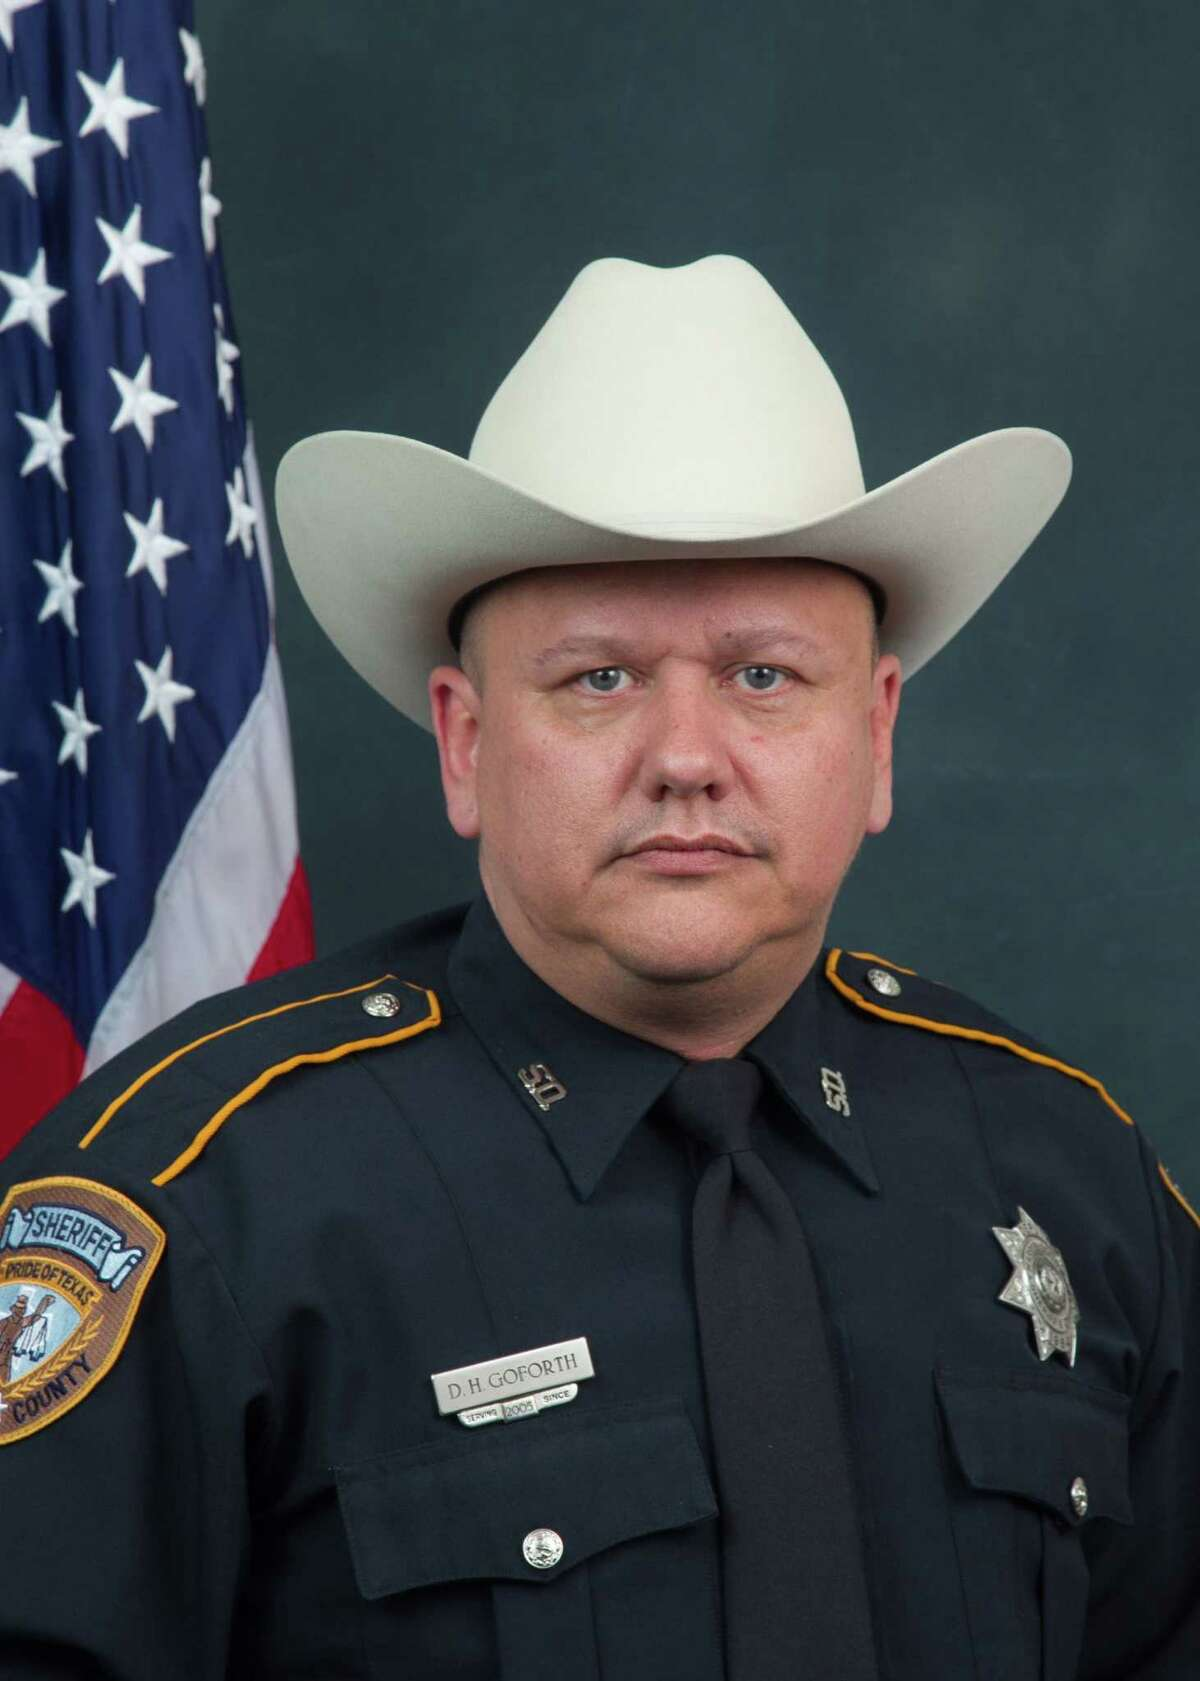 This undated photo provided by the Harris County Sheriff's Office shows sheriff's deputy Darren Goforth who was fatally shot on Aug. 28, 2015.